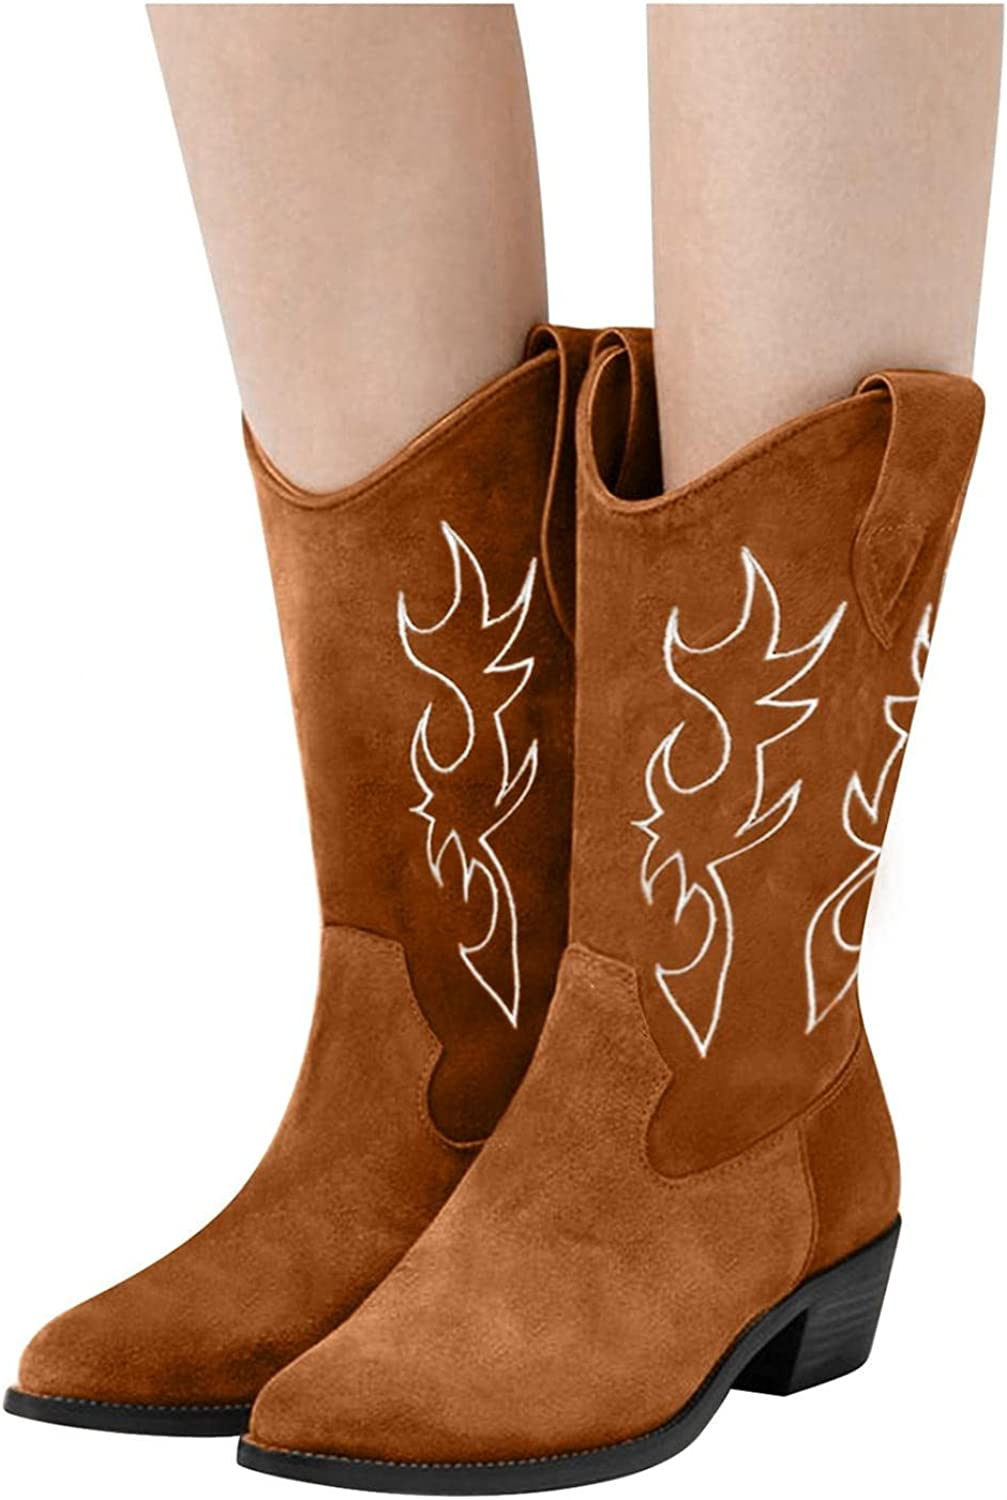 Masbird Free shipping New Western Boots for Excellent Women Sunflowers Embroidery Cowboy Boo